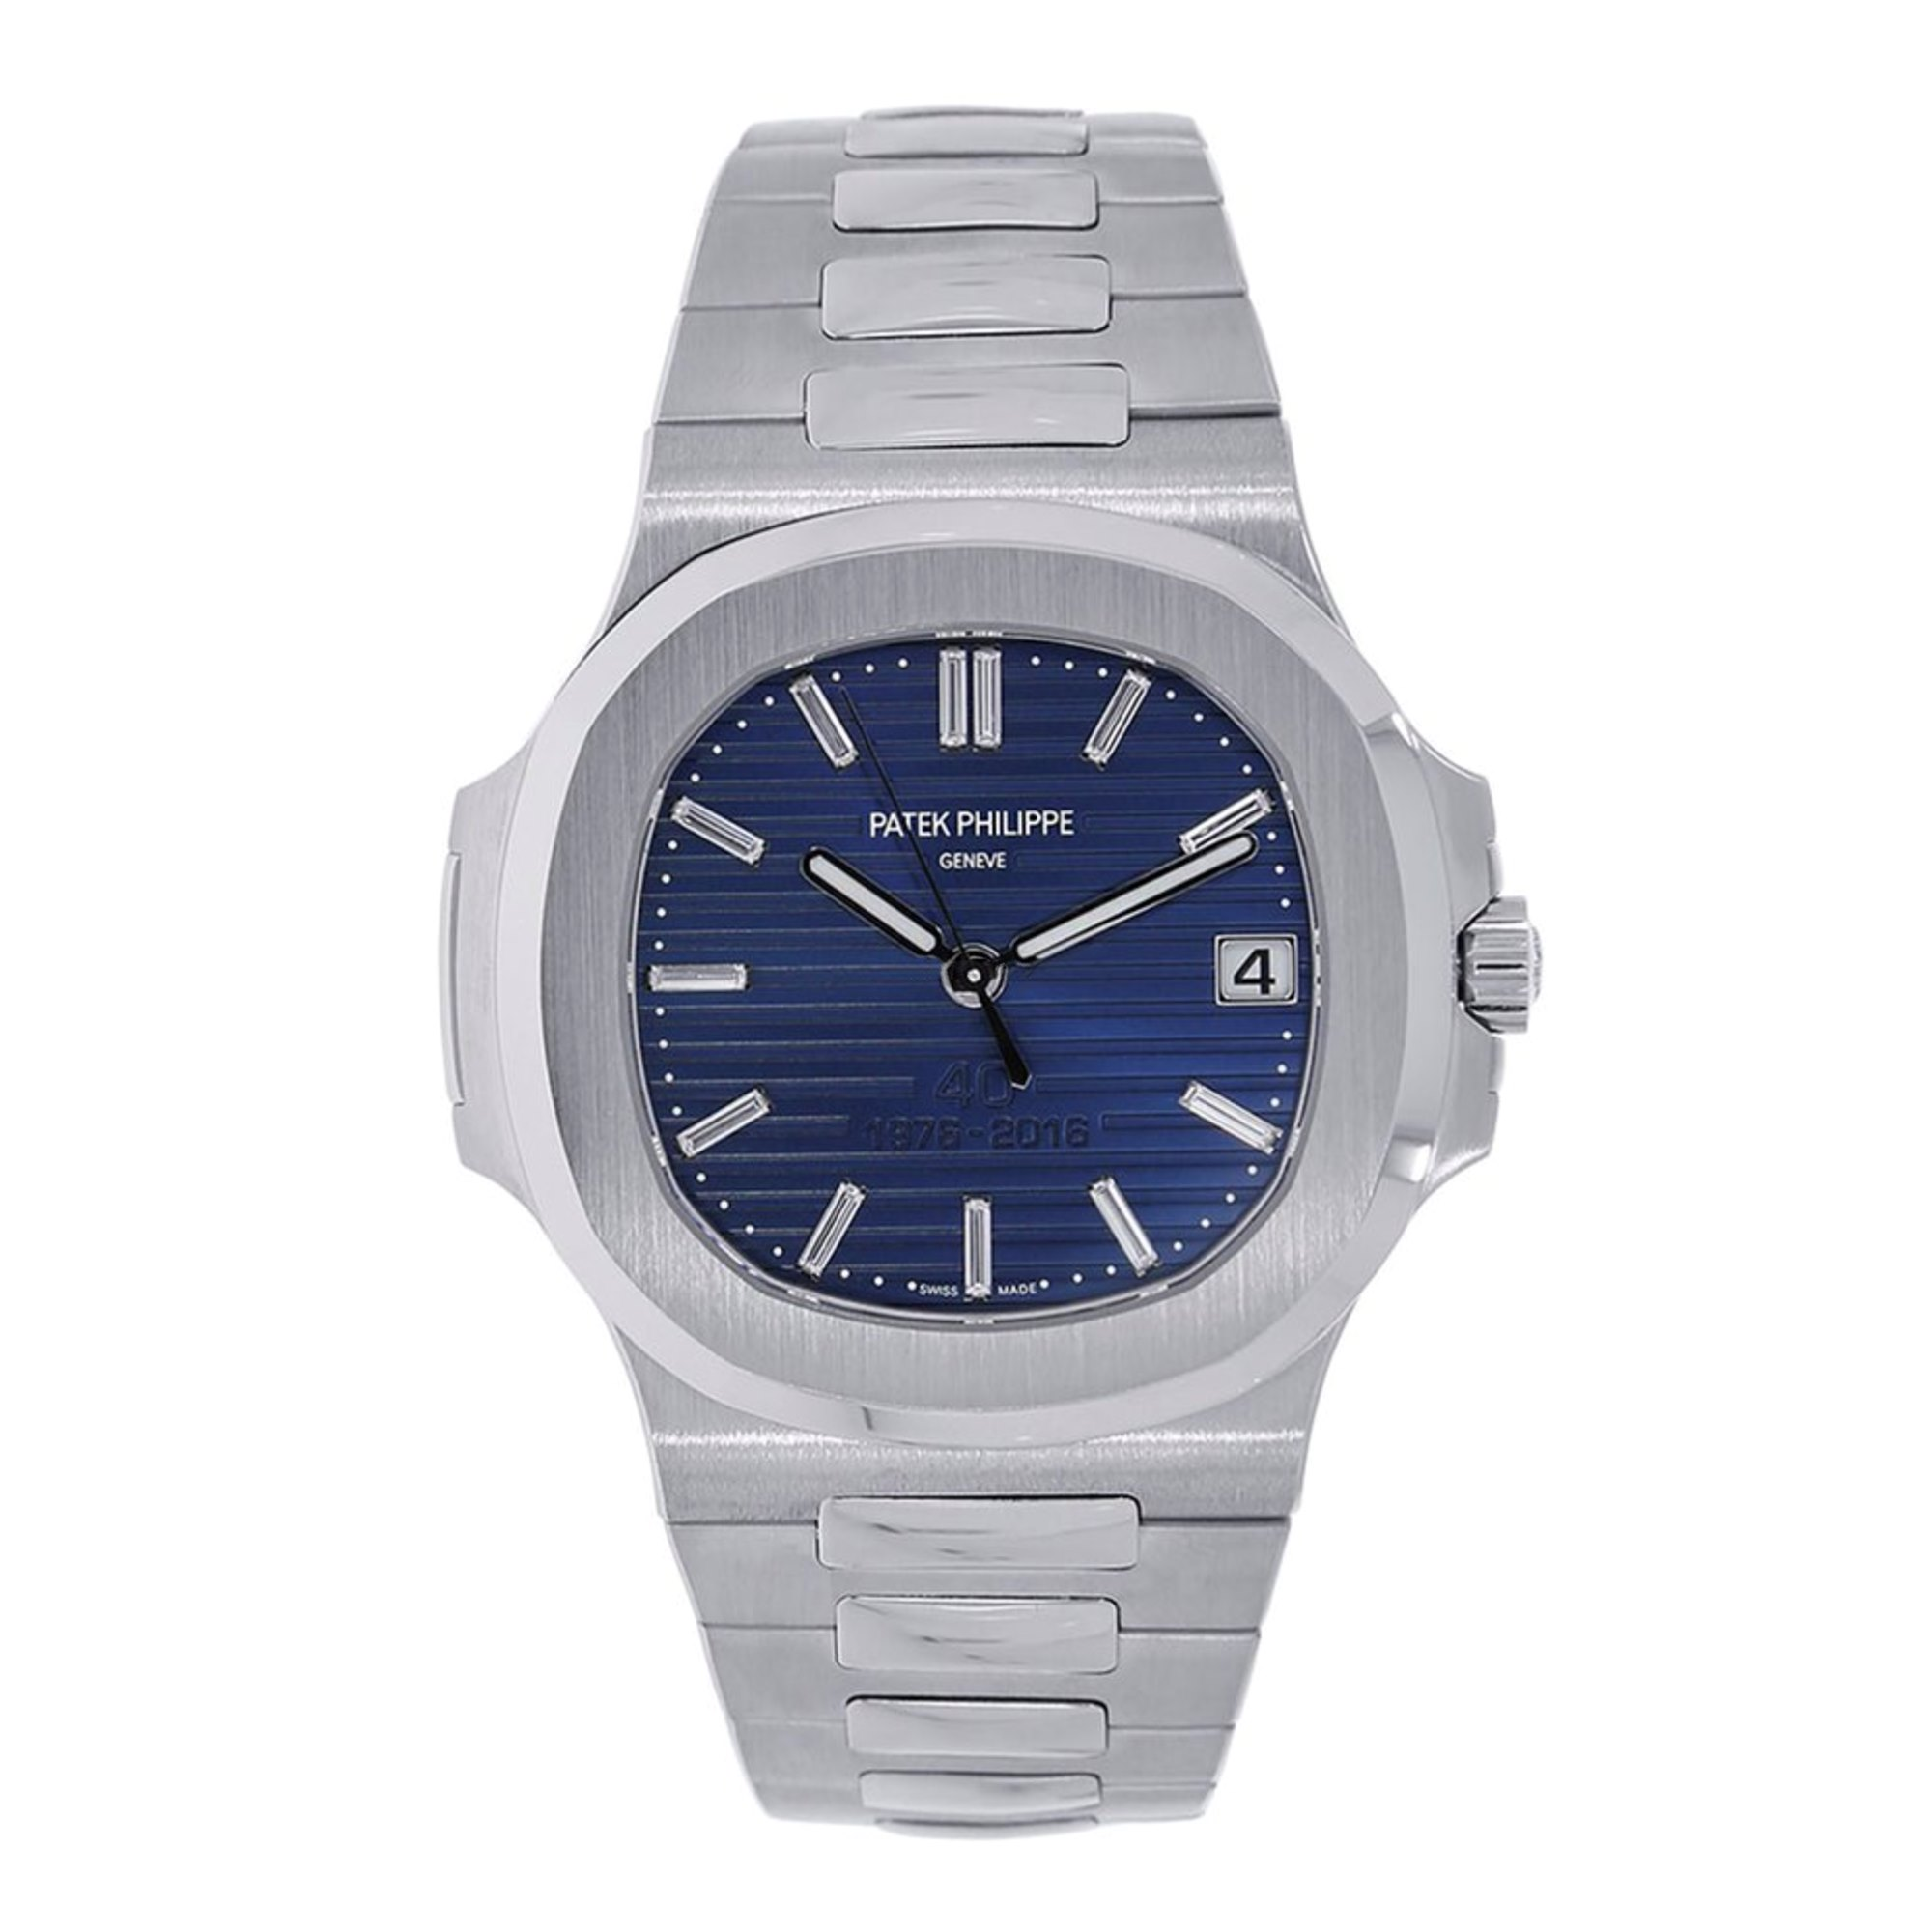 Patek Philippe Nautilus Singled Sealed 40th Anniversary Diamond Platinum 5711/1P-001